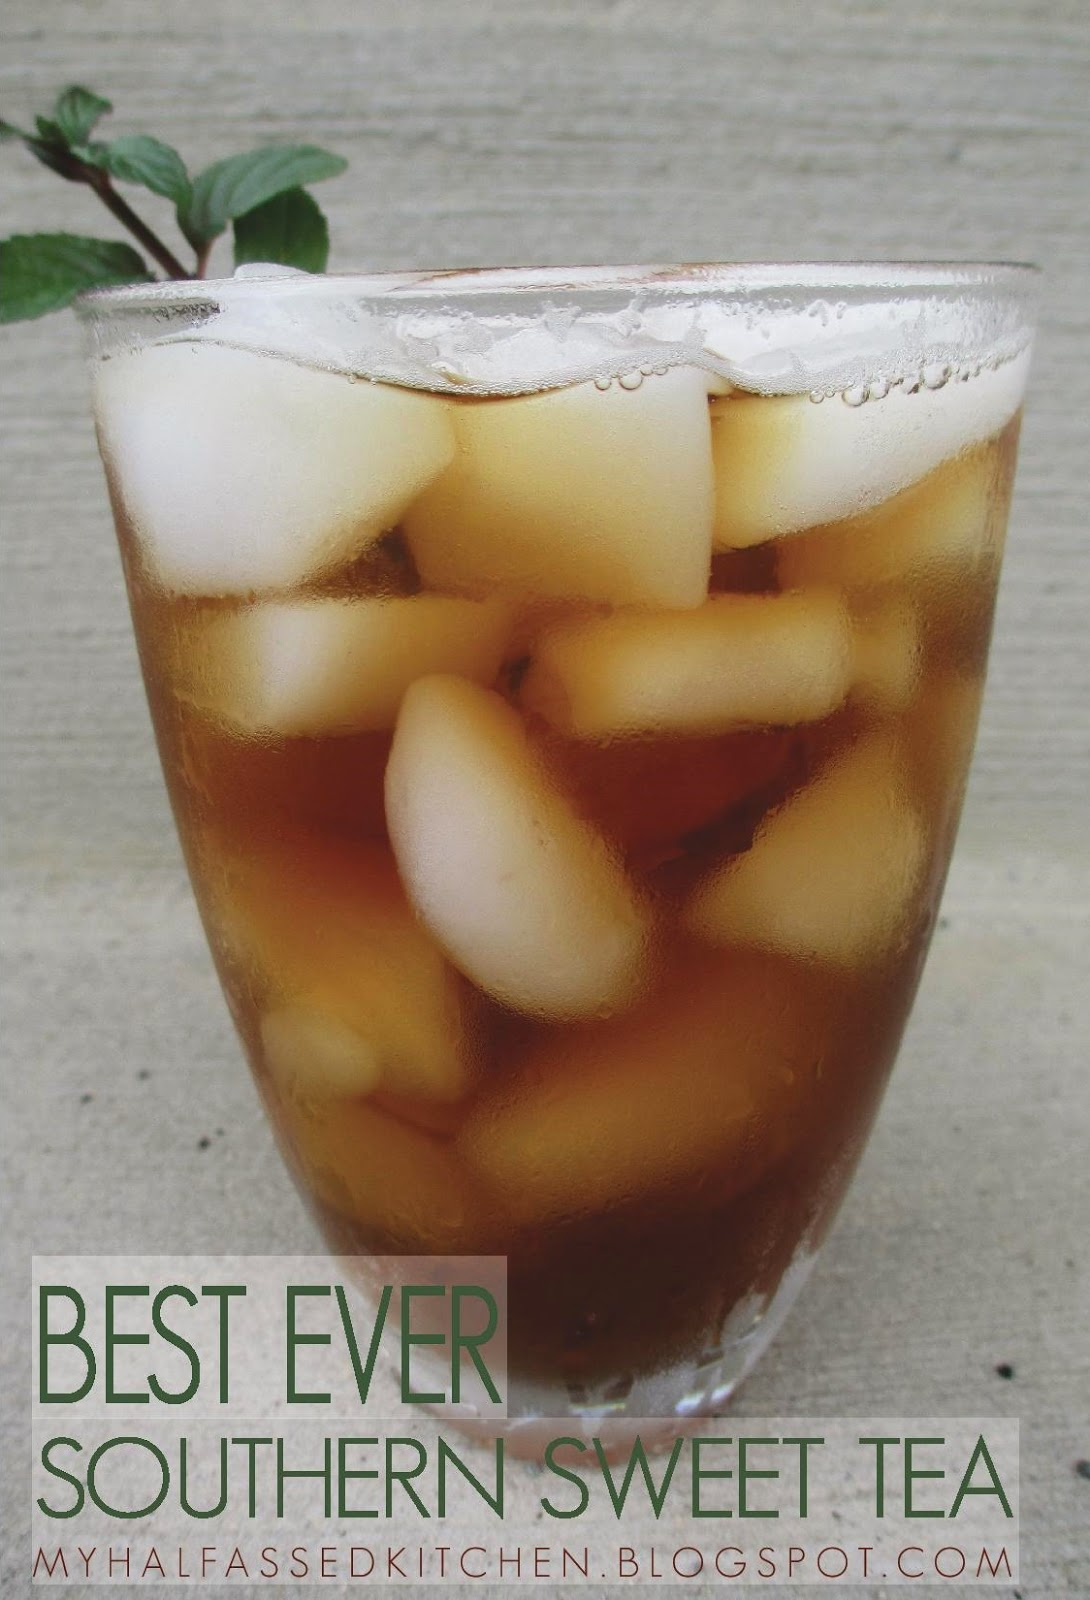 http://myhalfassedkitchen.blogspot.com/2014/05/best-quick-and-easy-iced-tea-recipe.html